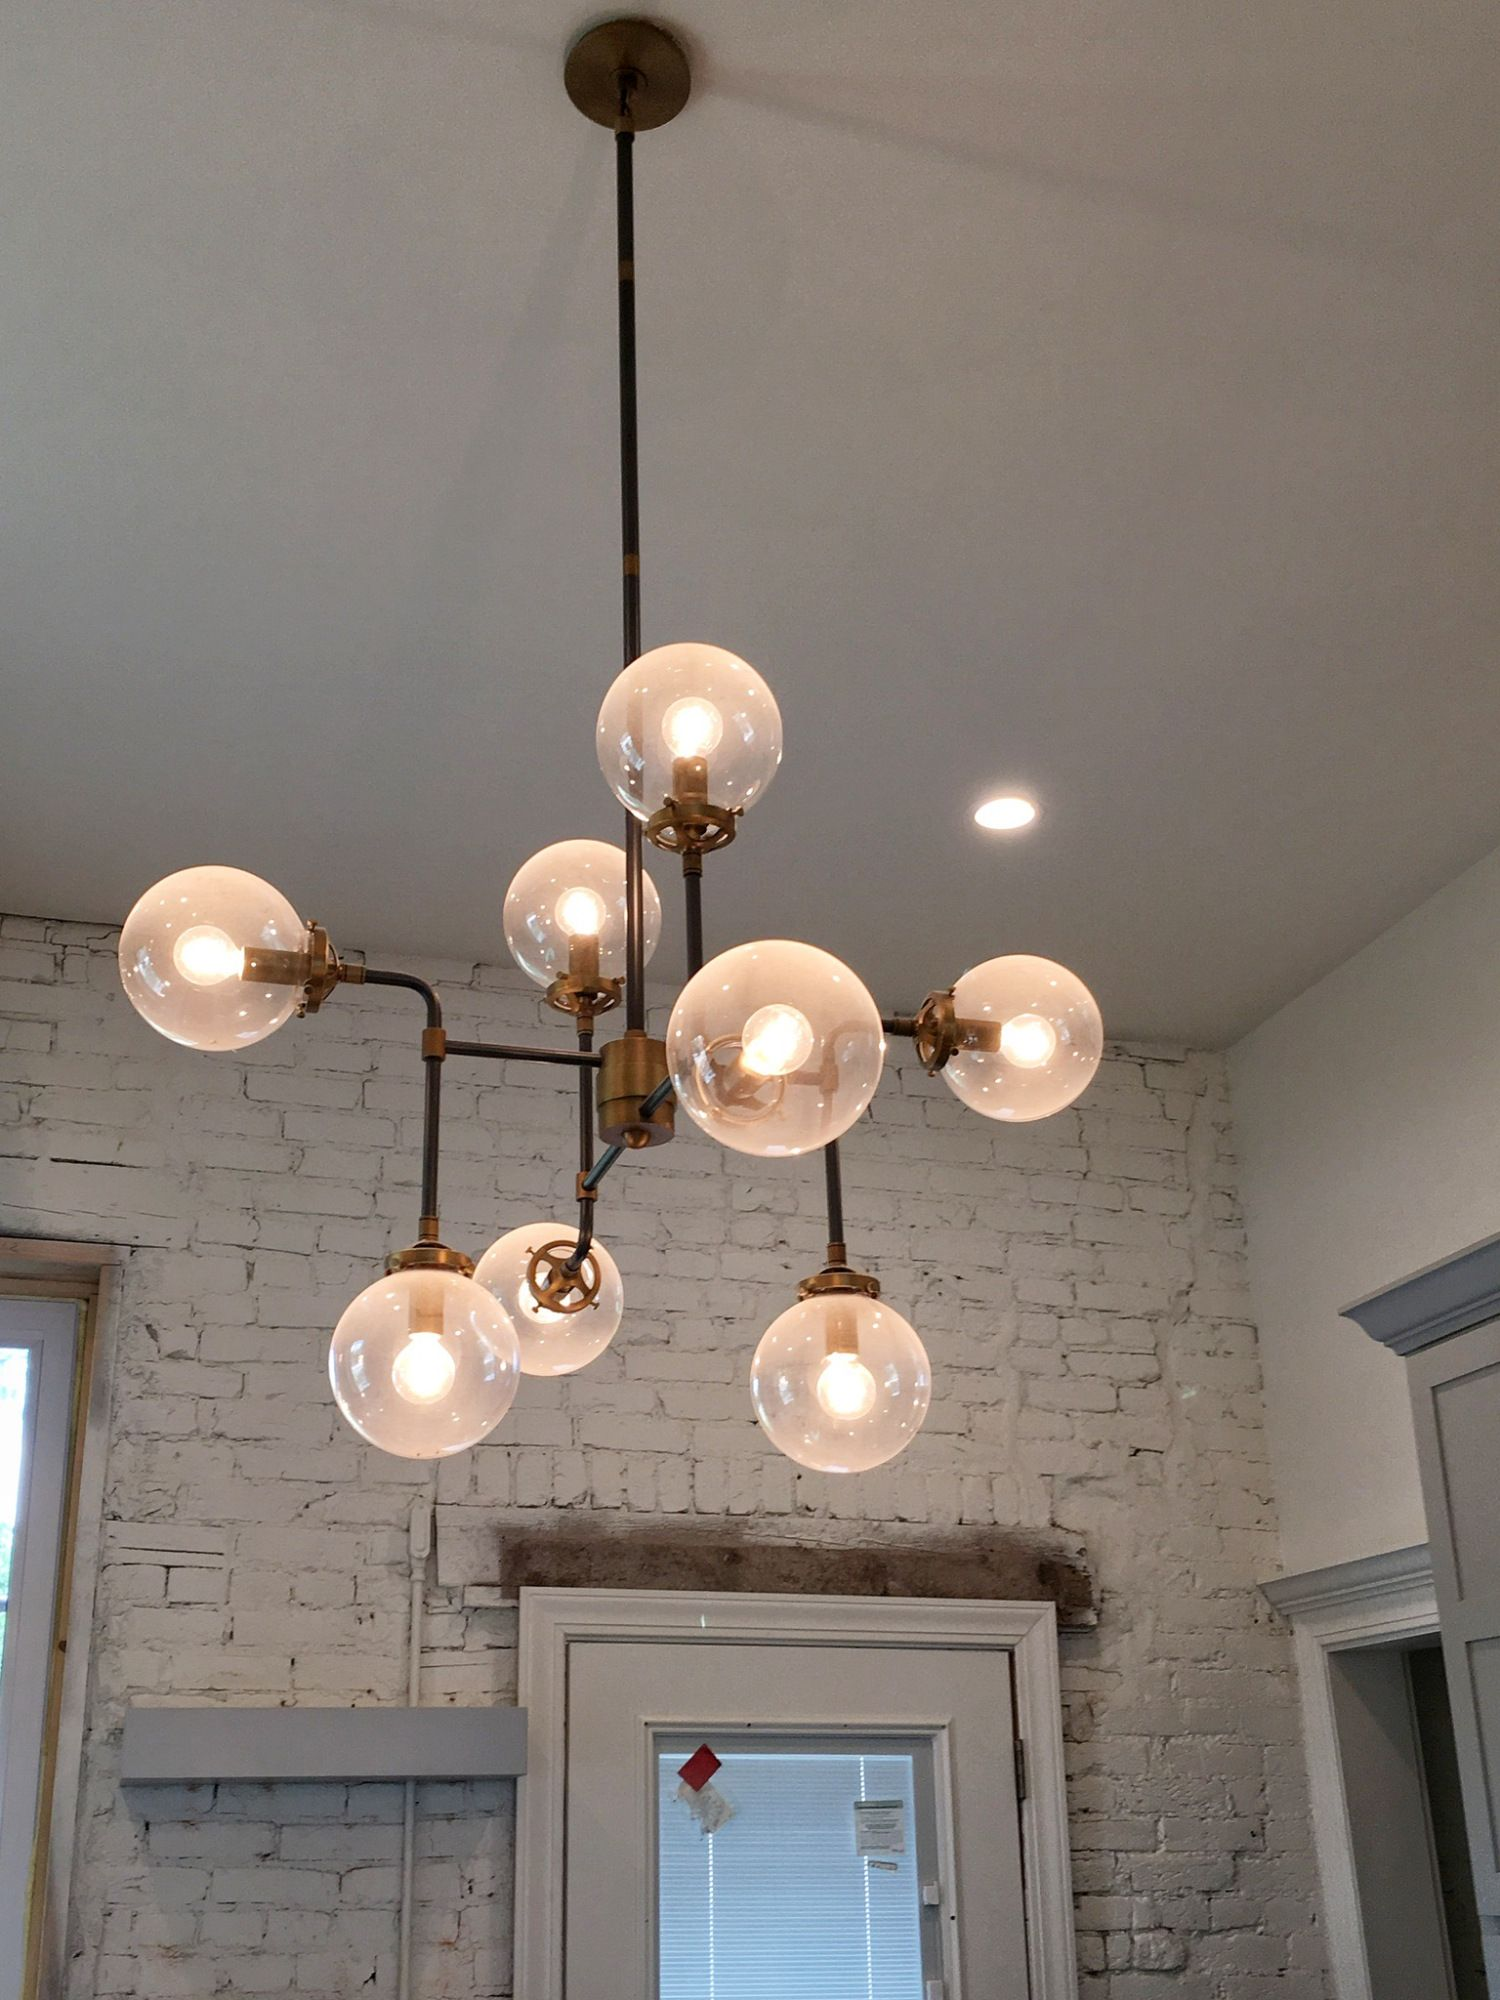 Bistro Globe Chandelier From Restoration Hardware Lightfixtures Offcenterrevival Oldhouse Homerenovation Fixerupper Italianate Victorian